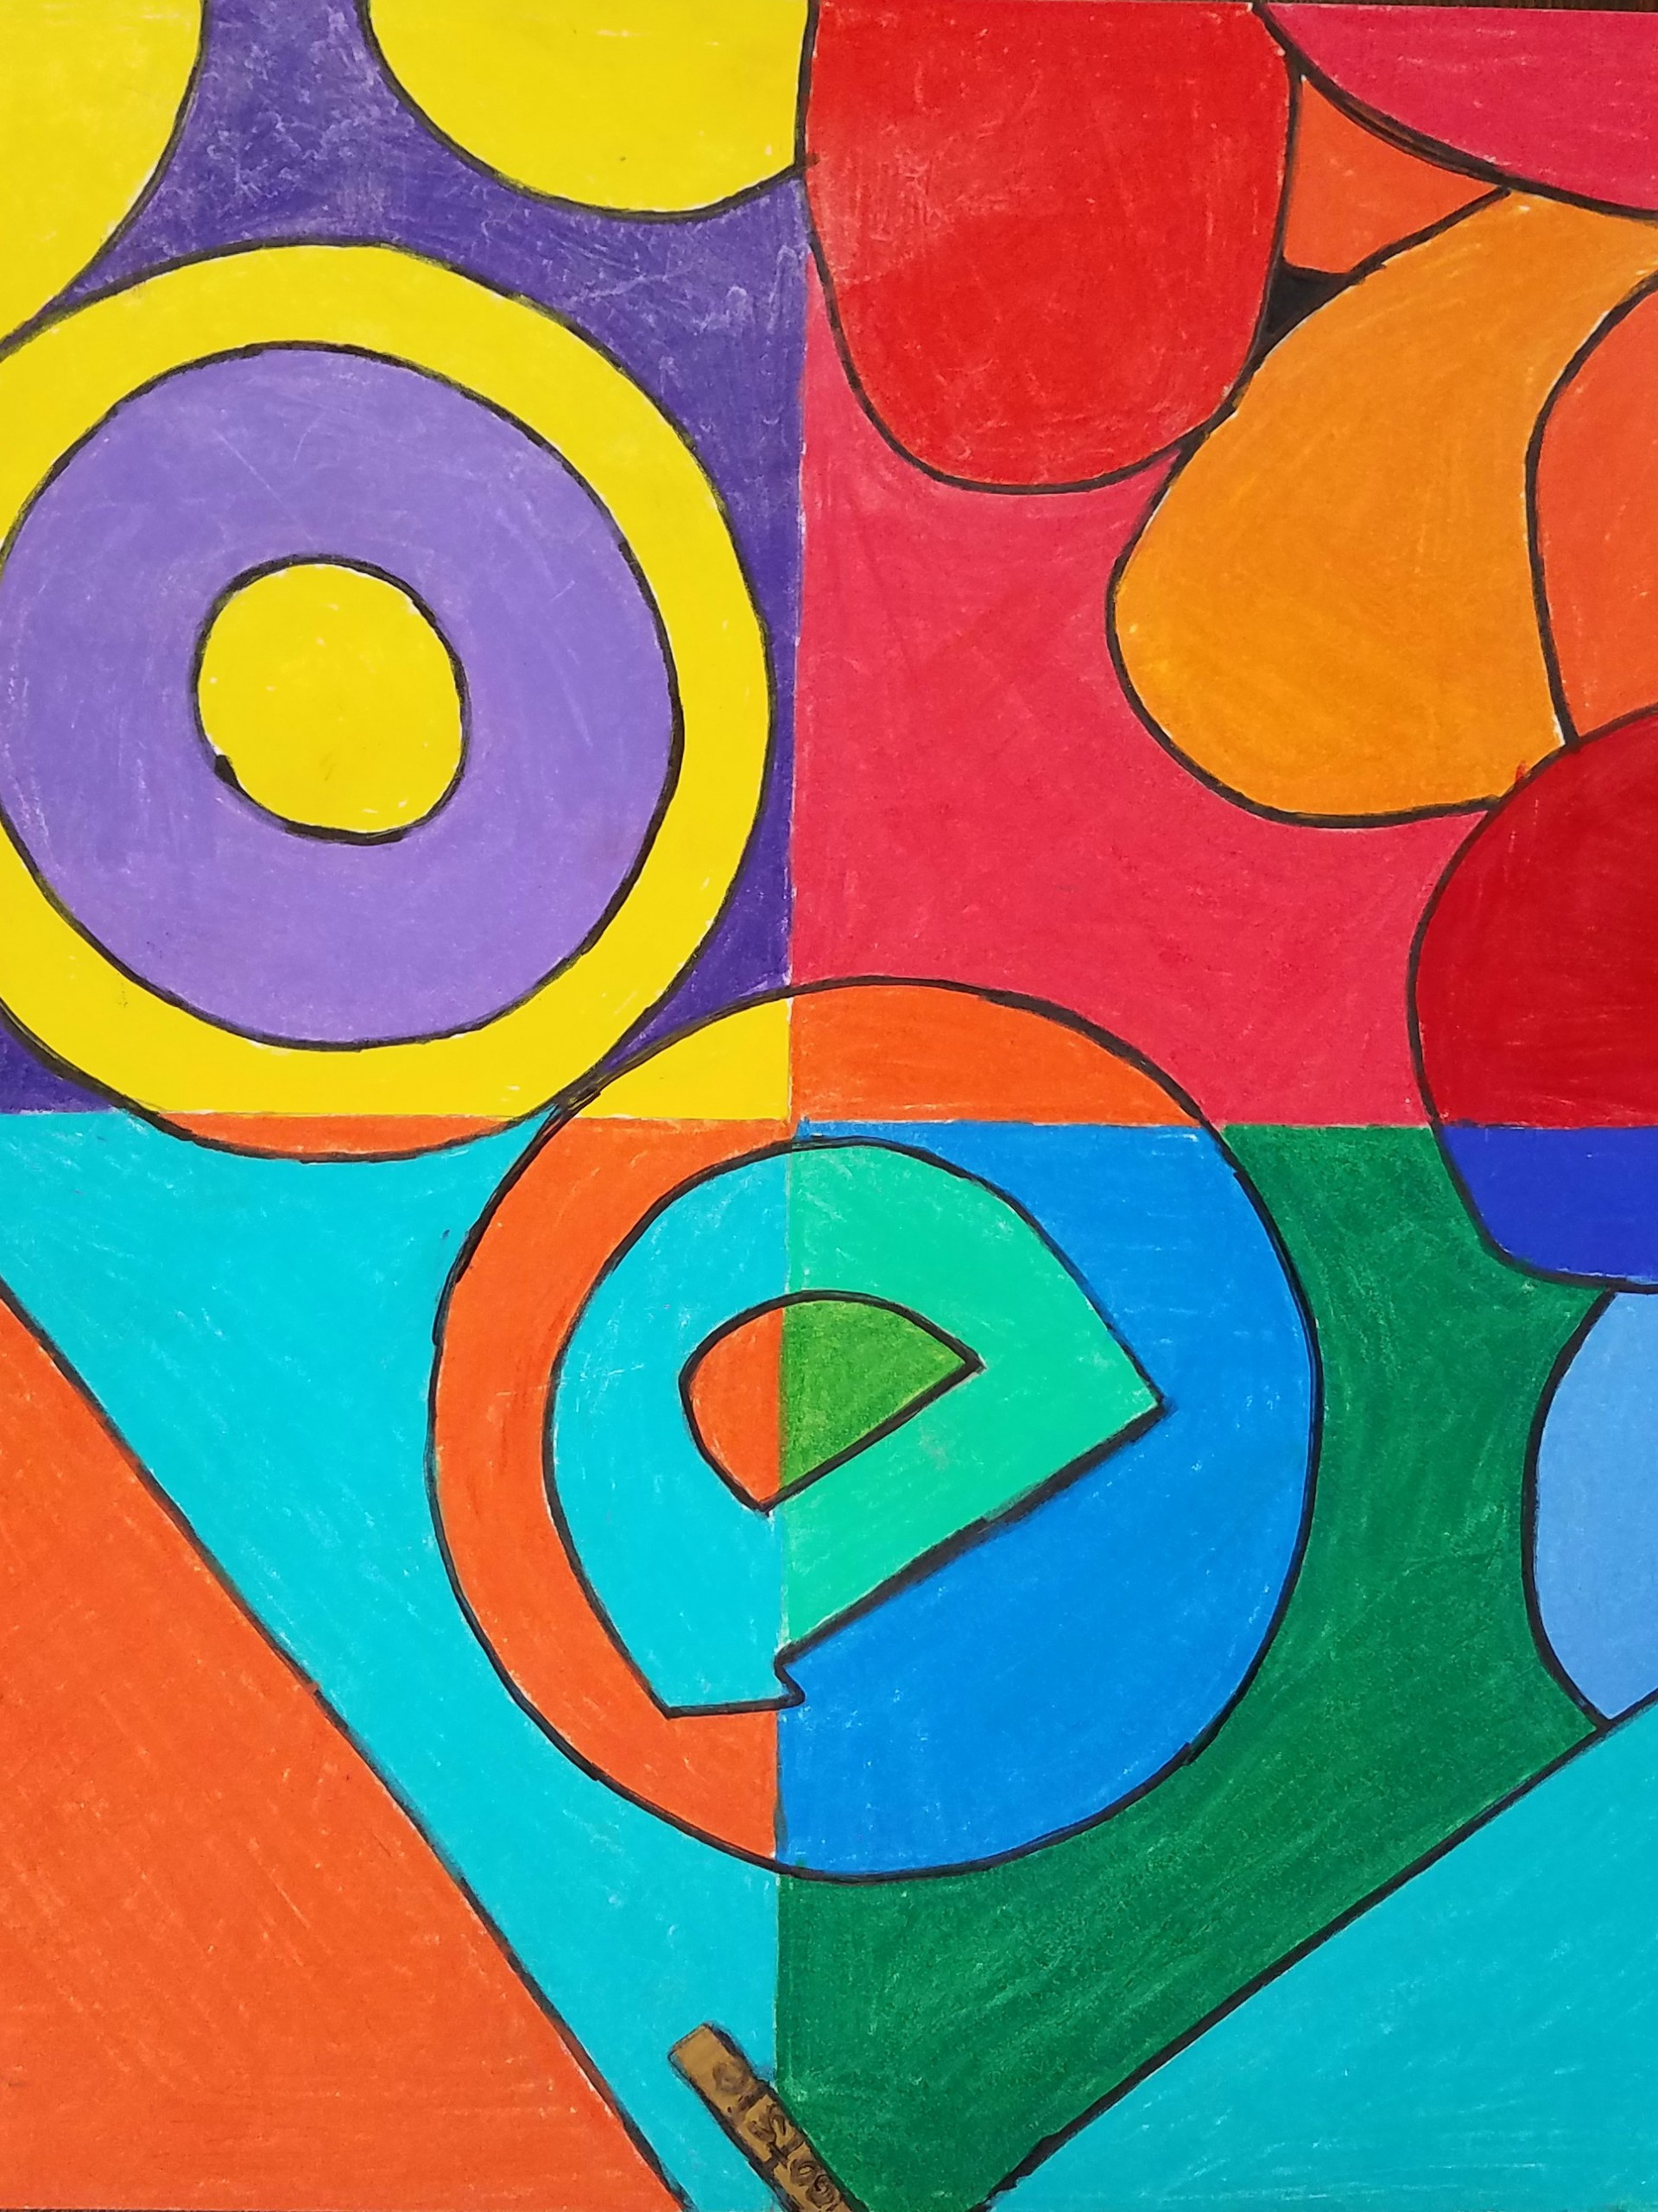 Pop Art color theory project by Jayln Dunn